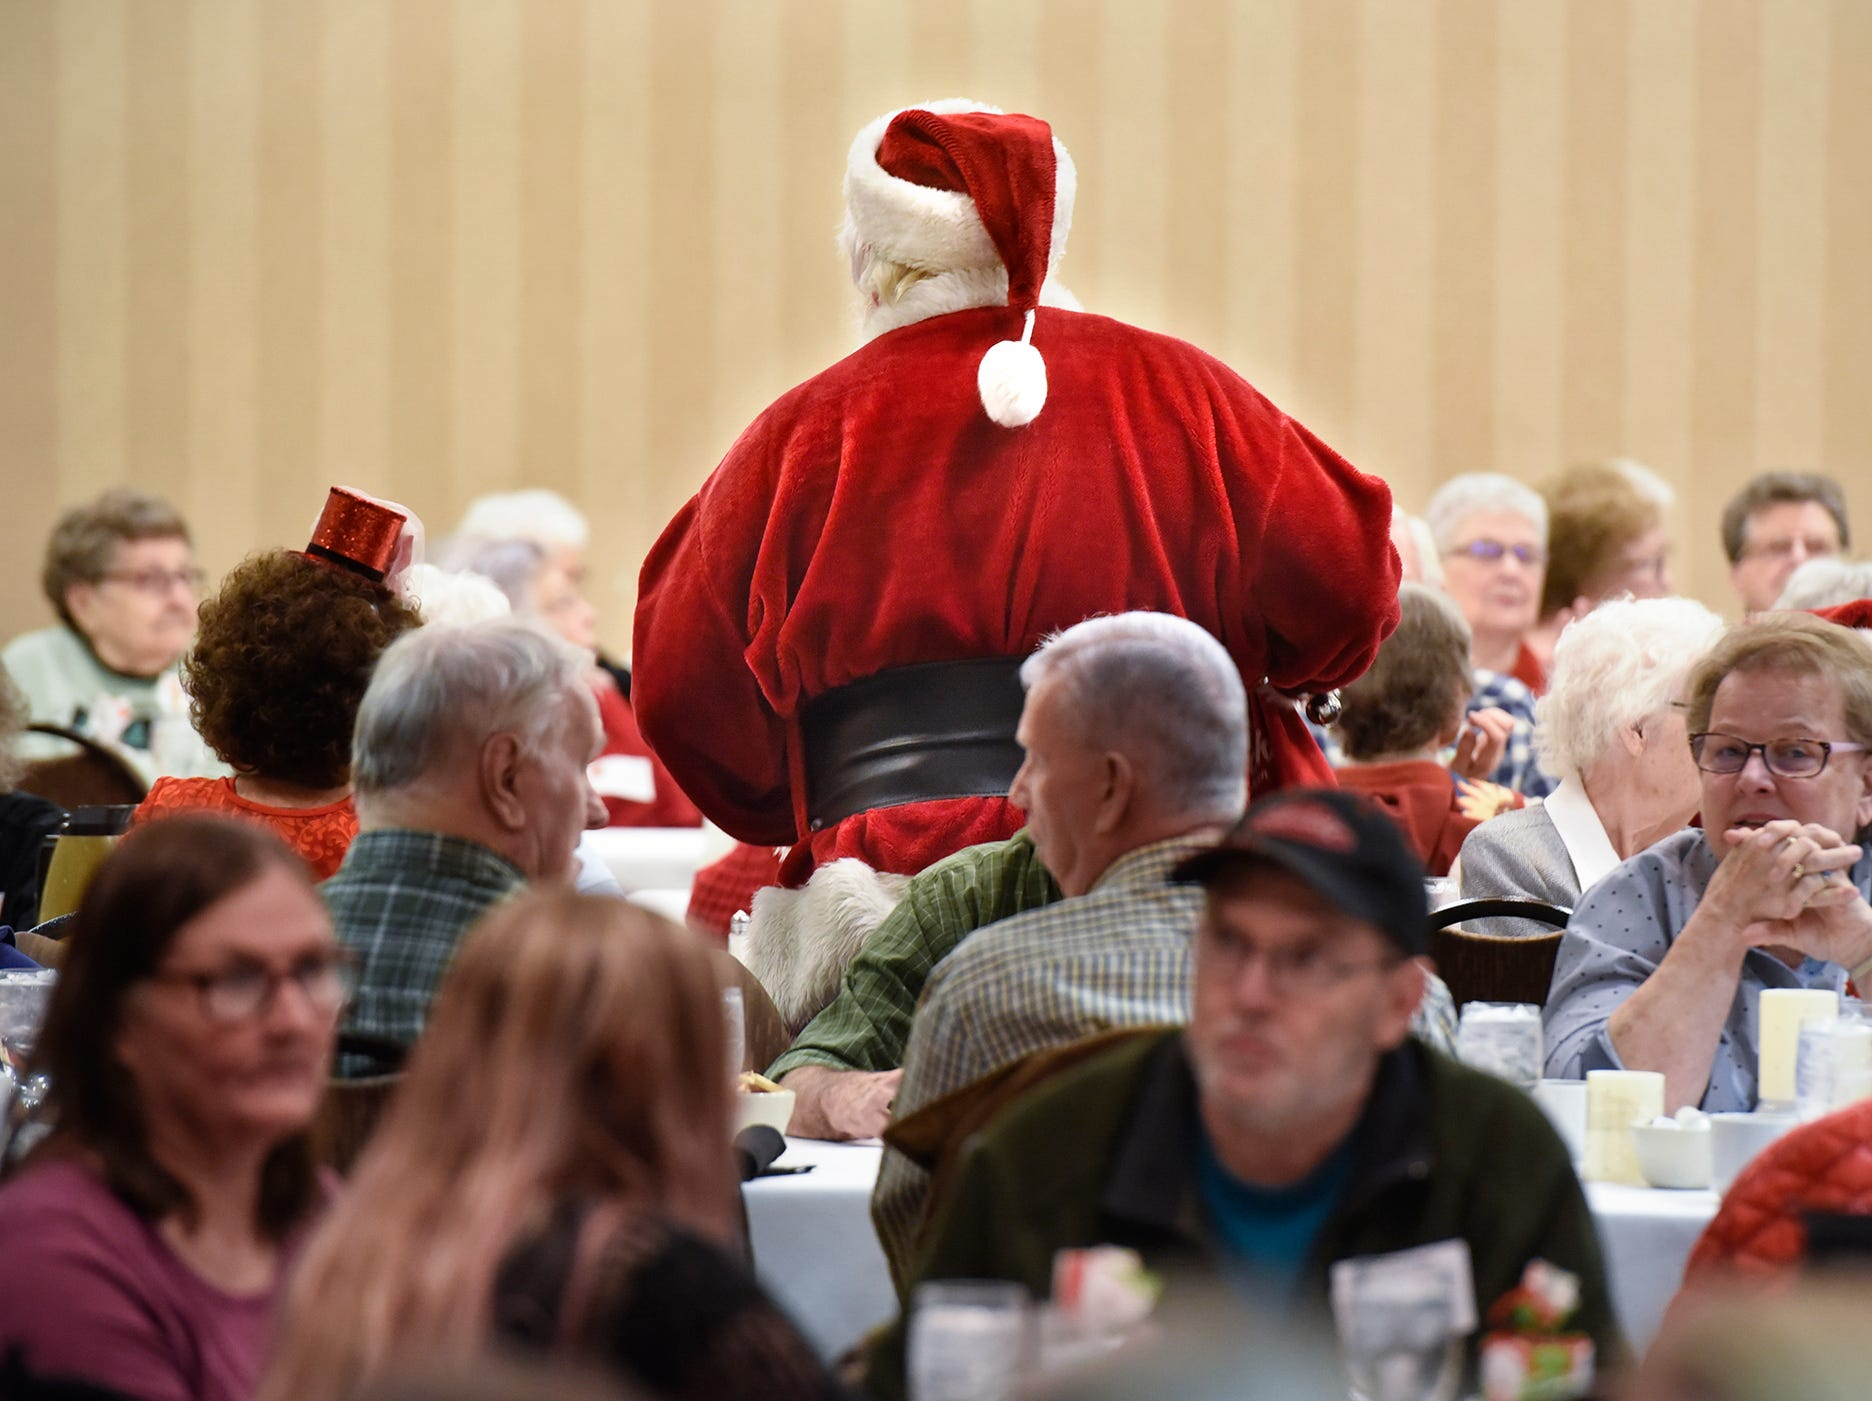 Santa talks with residents during the Dinner with Santa event Monday, Dec. 17, in St. Cloud.